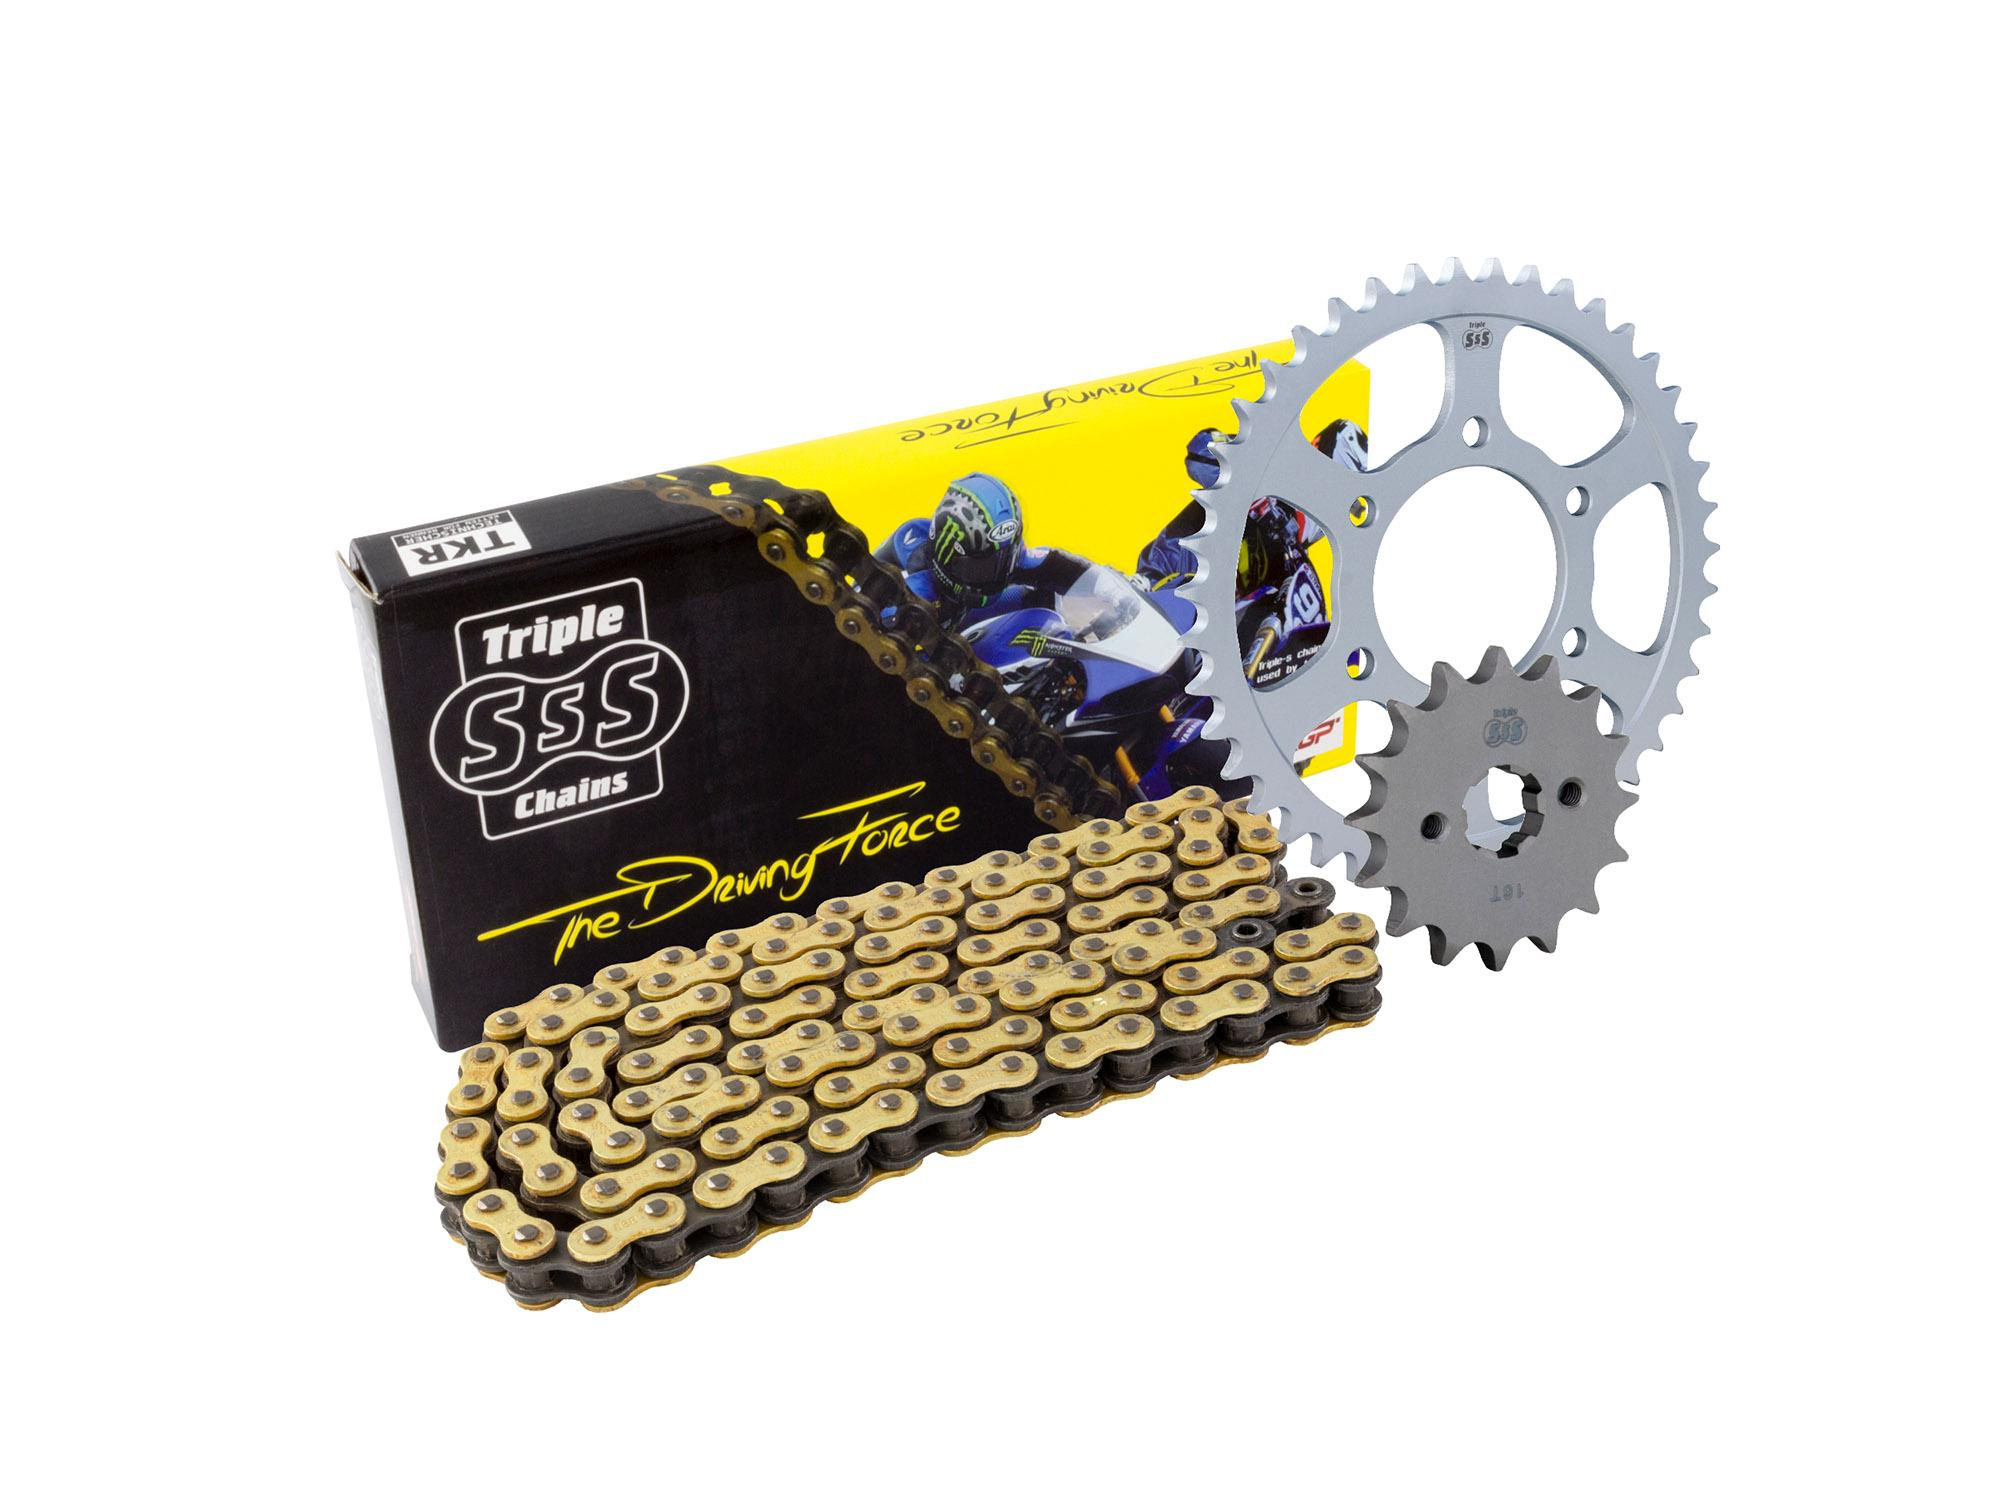 Kawasaki ZZ-R600 05-08 Chain & Sprocket Kit: 15T Front, 40T Rear, HD O-Ring Gold Chain 525H 108 Link